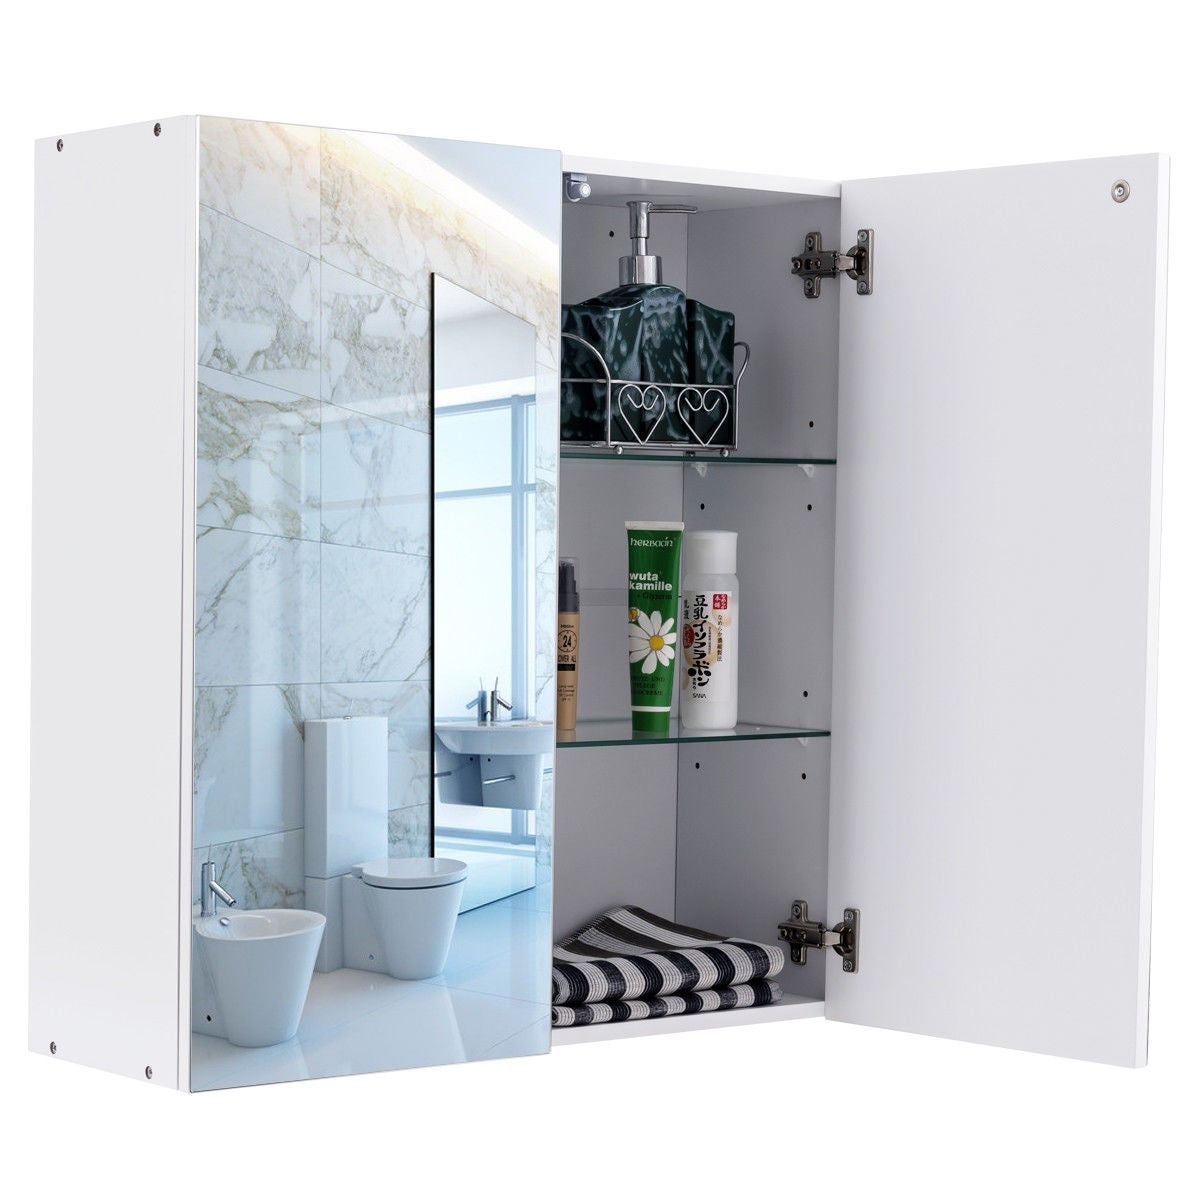 Gymax 24 Wide Wall Mount Mirrored Bathroom Medicine Storage Cabinet 2 Mirror Door New Free Shipping Today 22996221